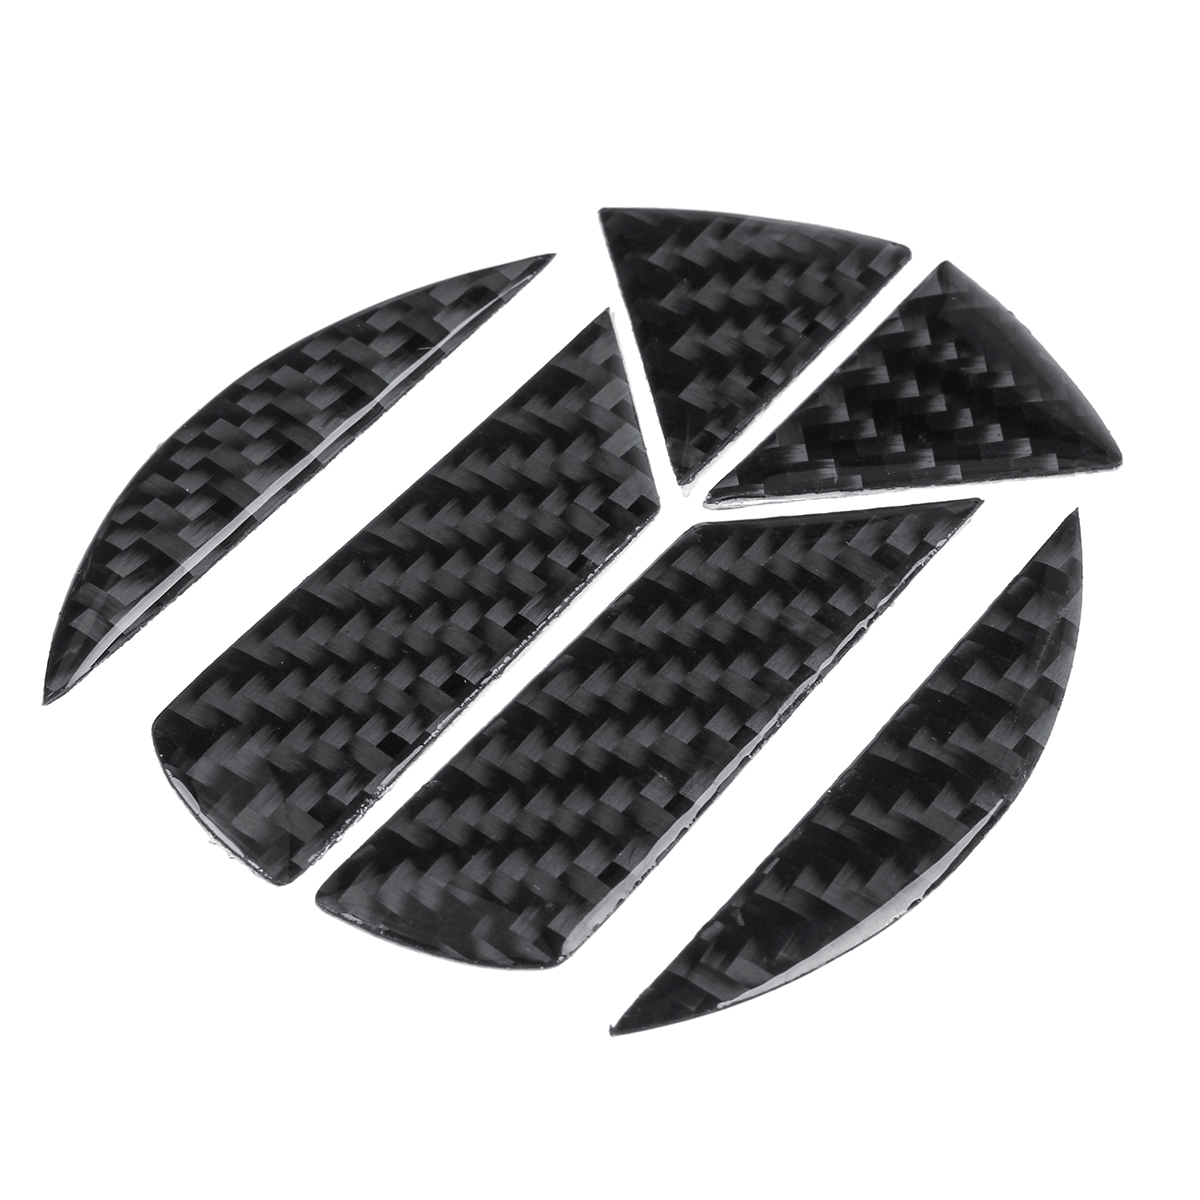 Carbon Fiber Pattern Car Tail Rear Badge Sticker Decals for Golf MK5 6 7 Magotan CC Tiguan